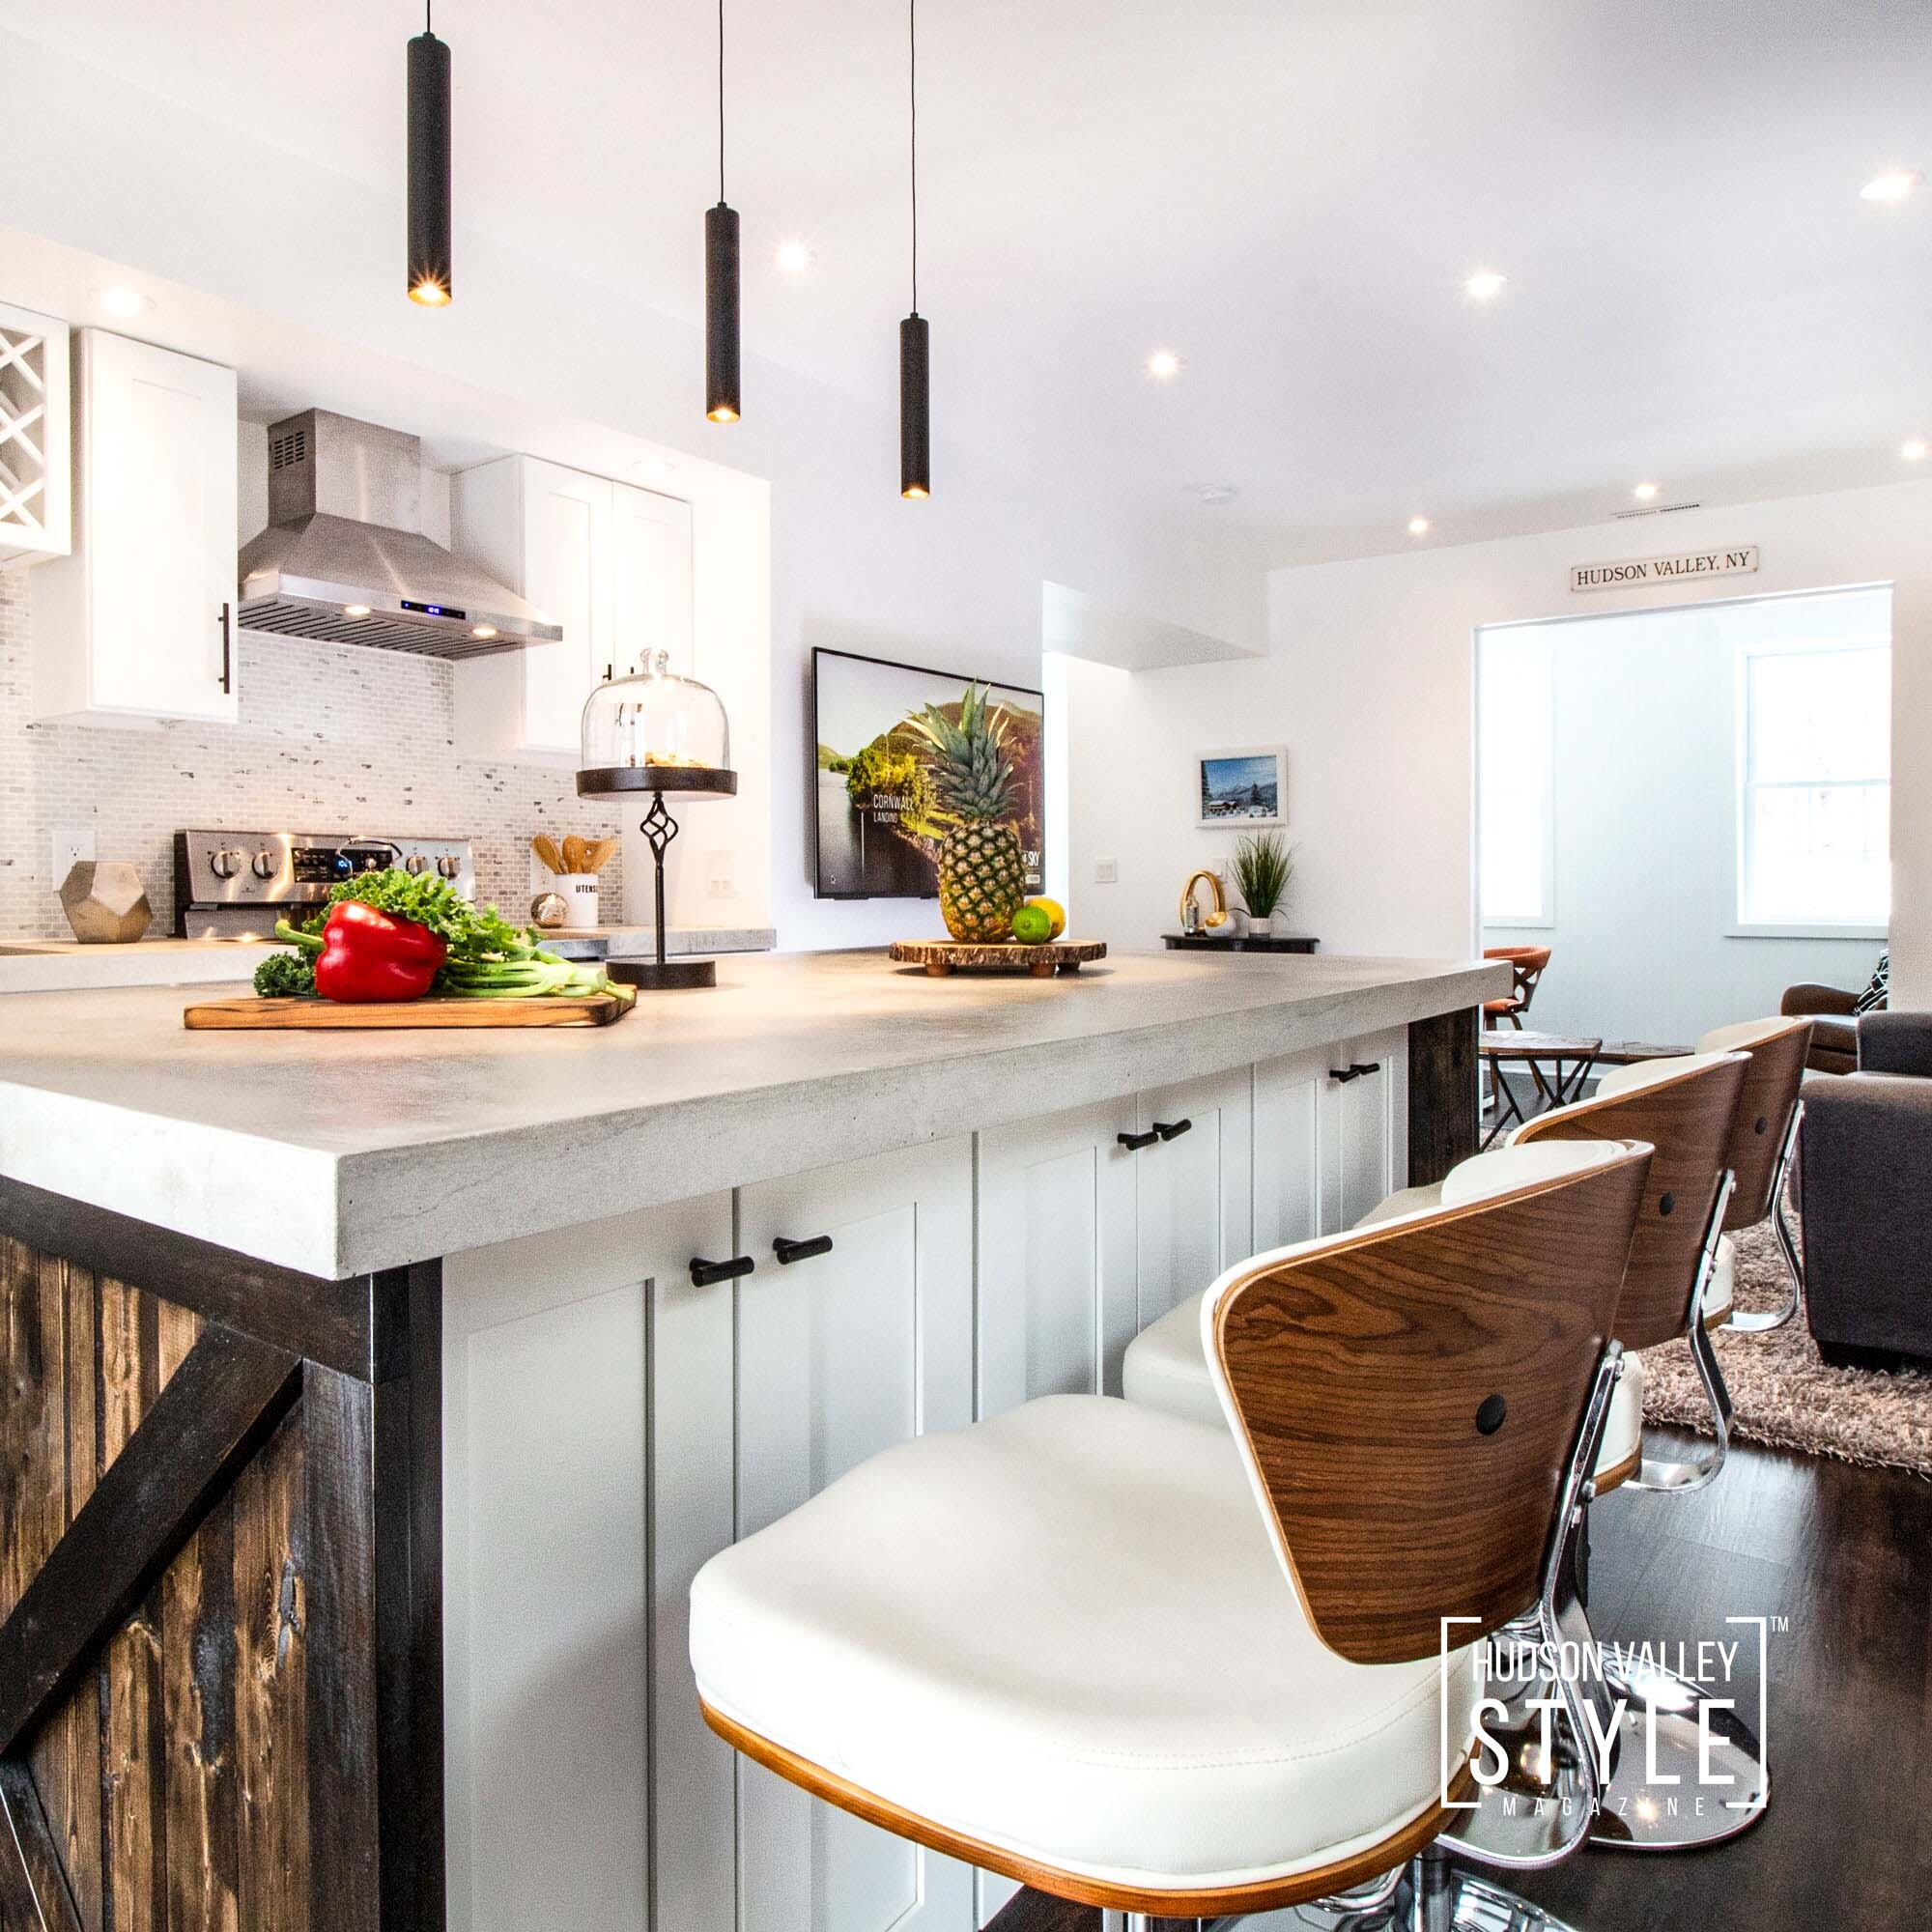 Victorian Home Renovation in Cornwall on Hudson, NY – Interior Design and Real Estate Photography Project